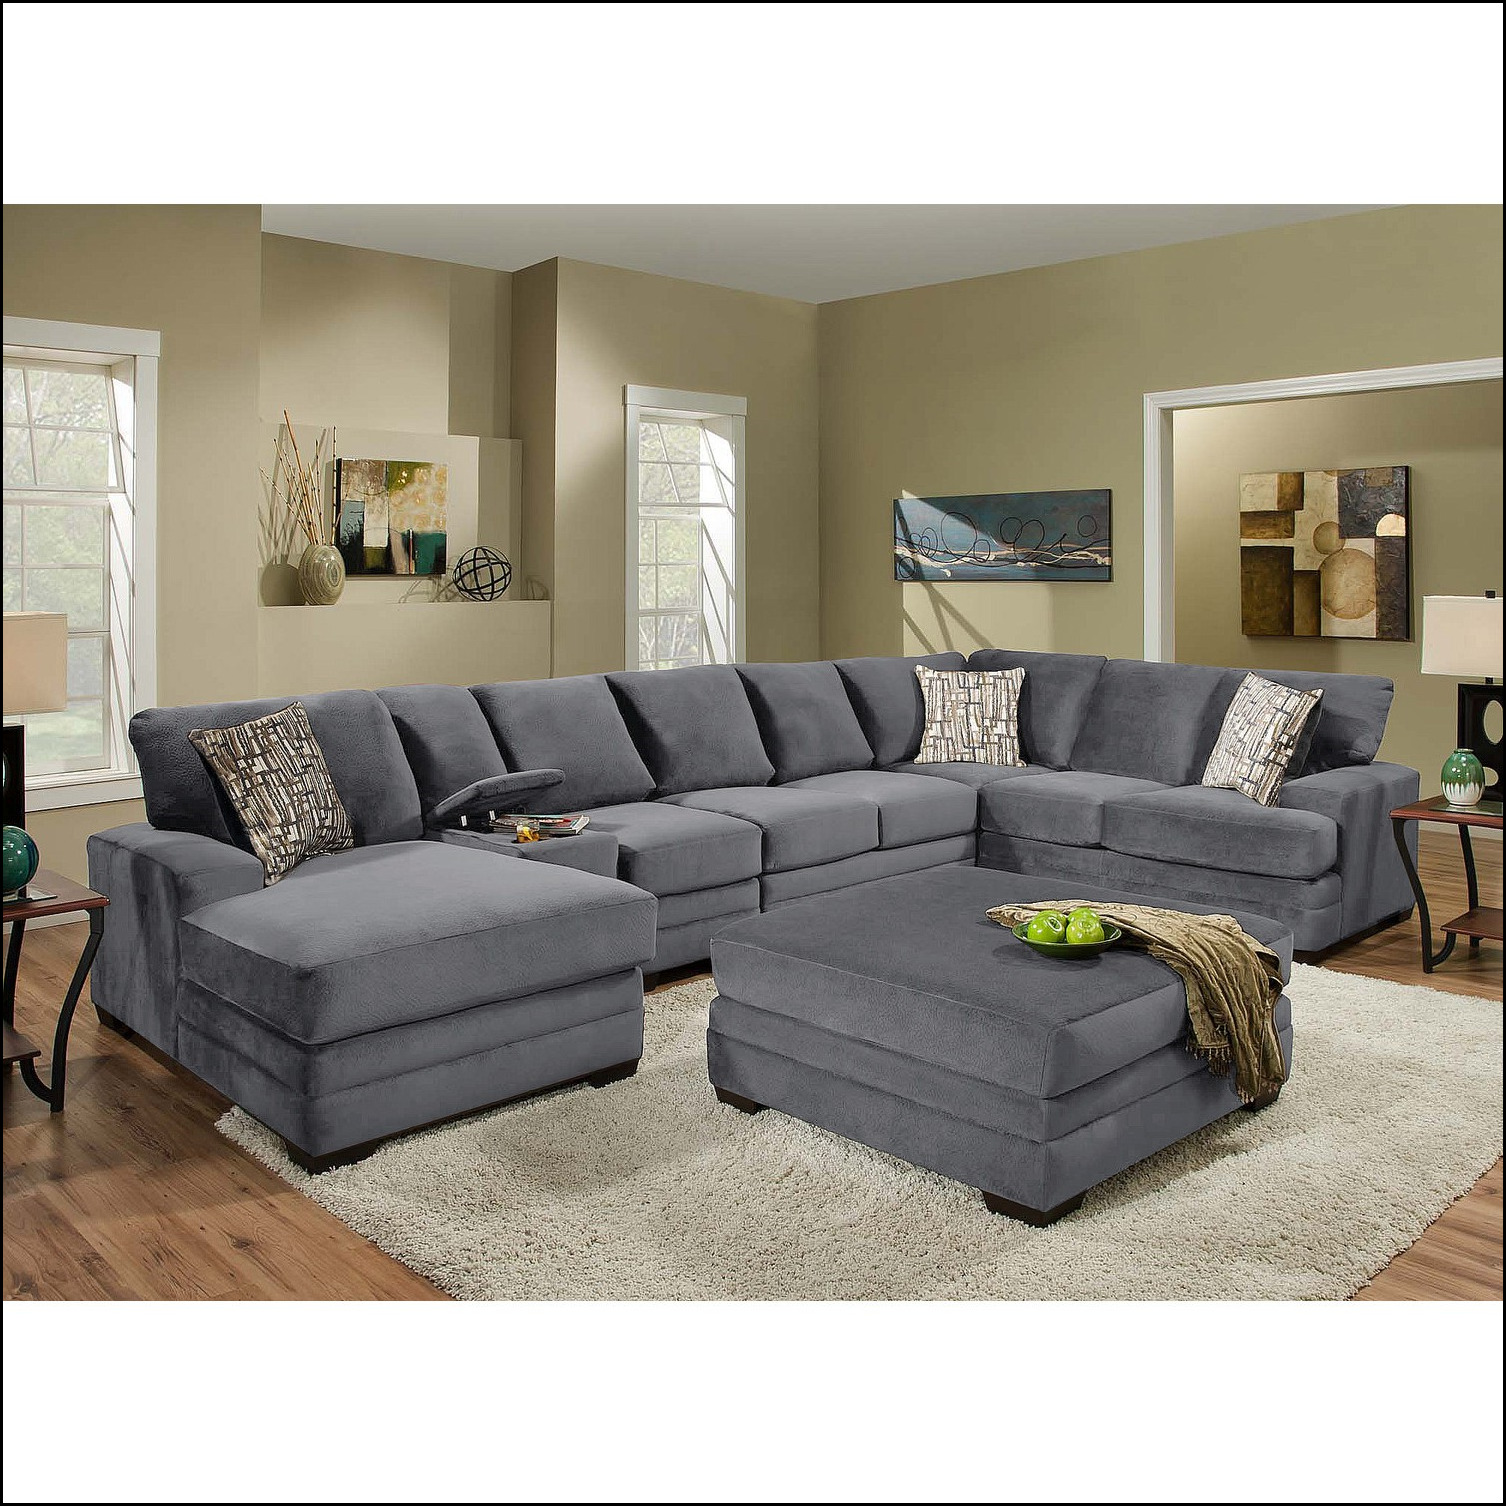 Most Durable Couches 5